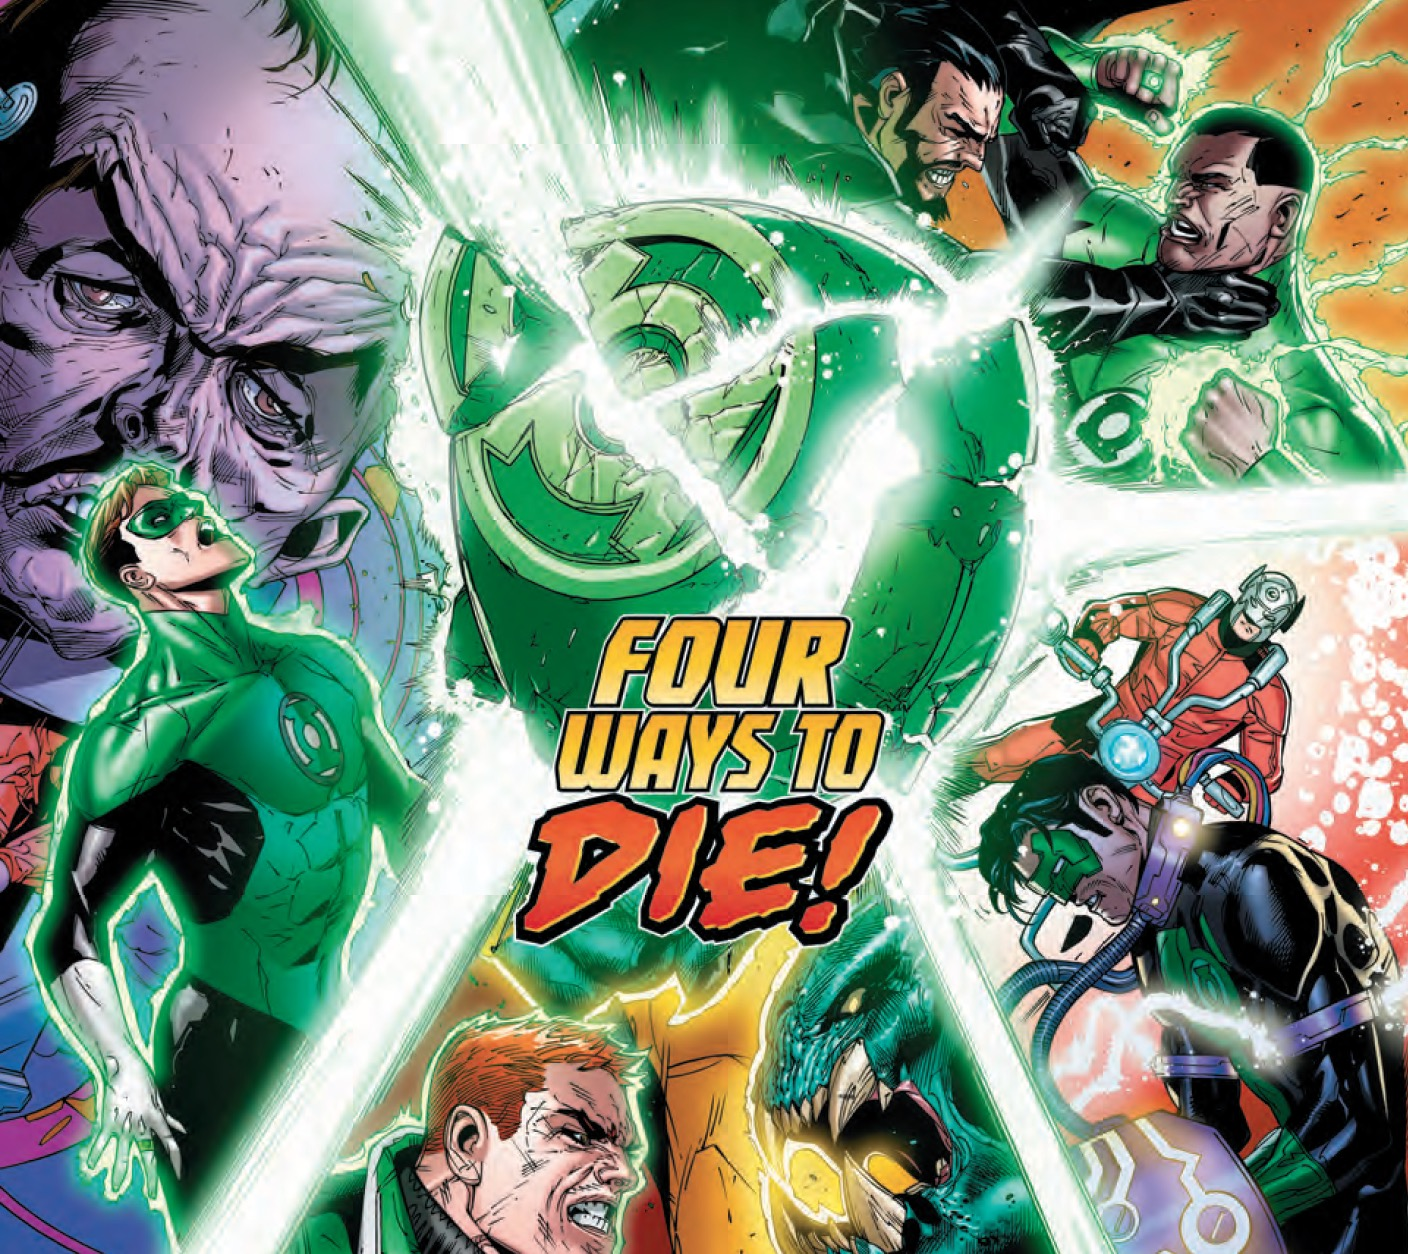 How long before Green Lanterns are killed when they attempt to protect criminals who deserve a trial?